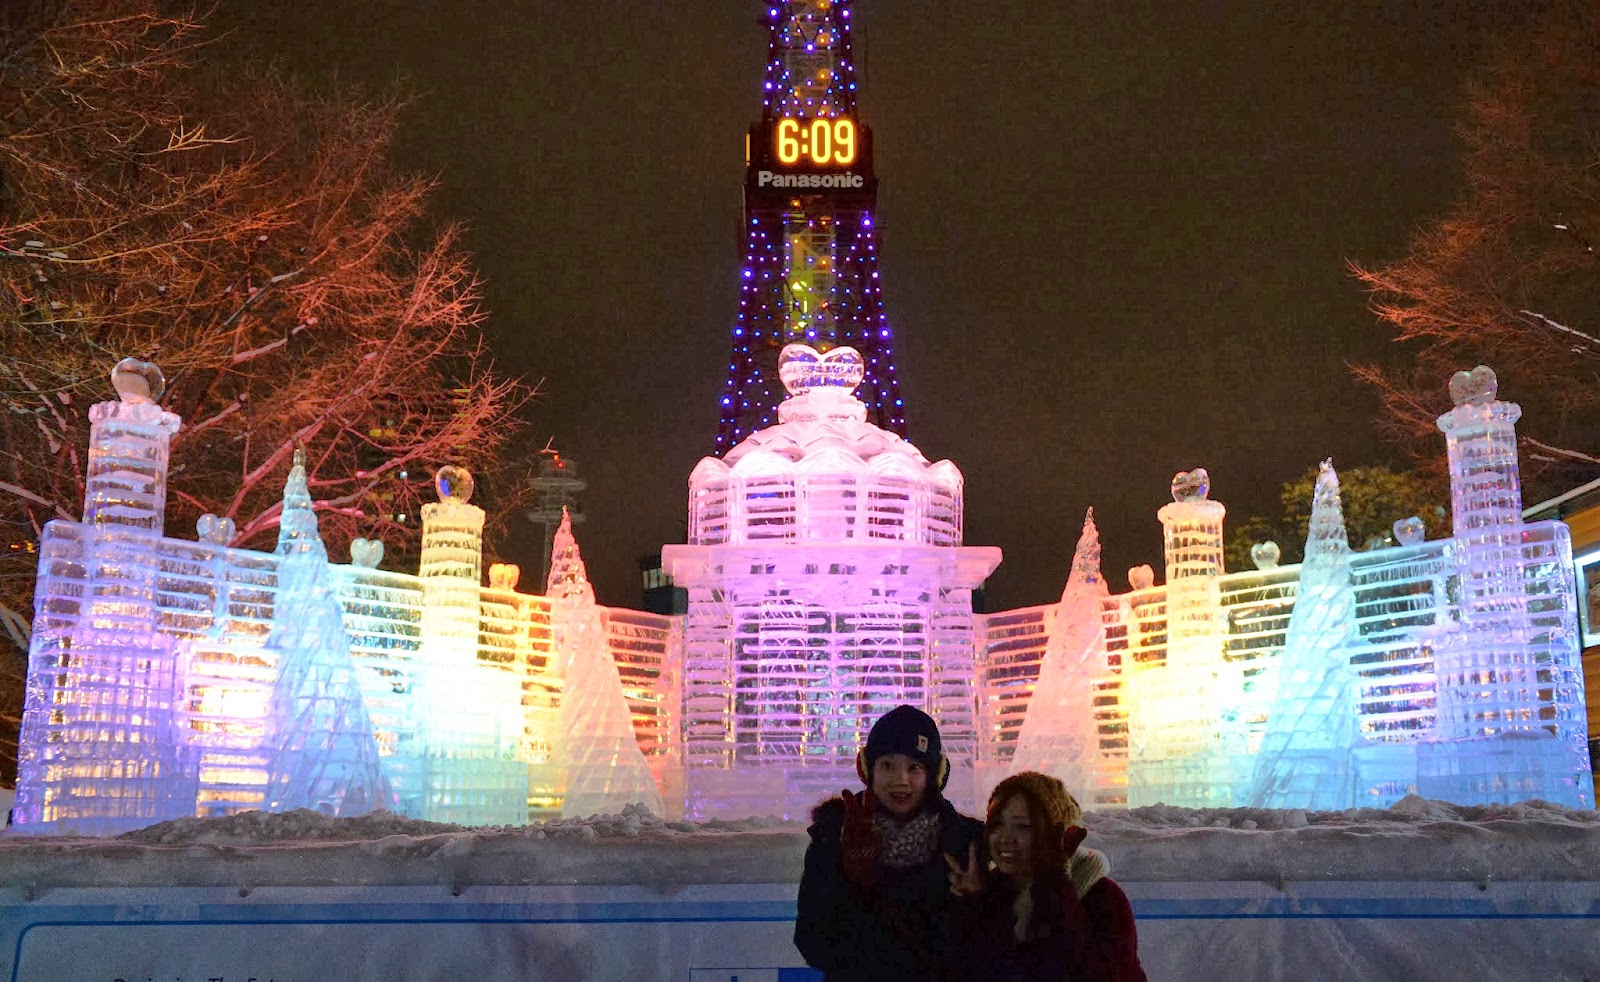 Sapporo Snow Festival in Japan at Night View with Lights